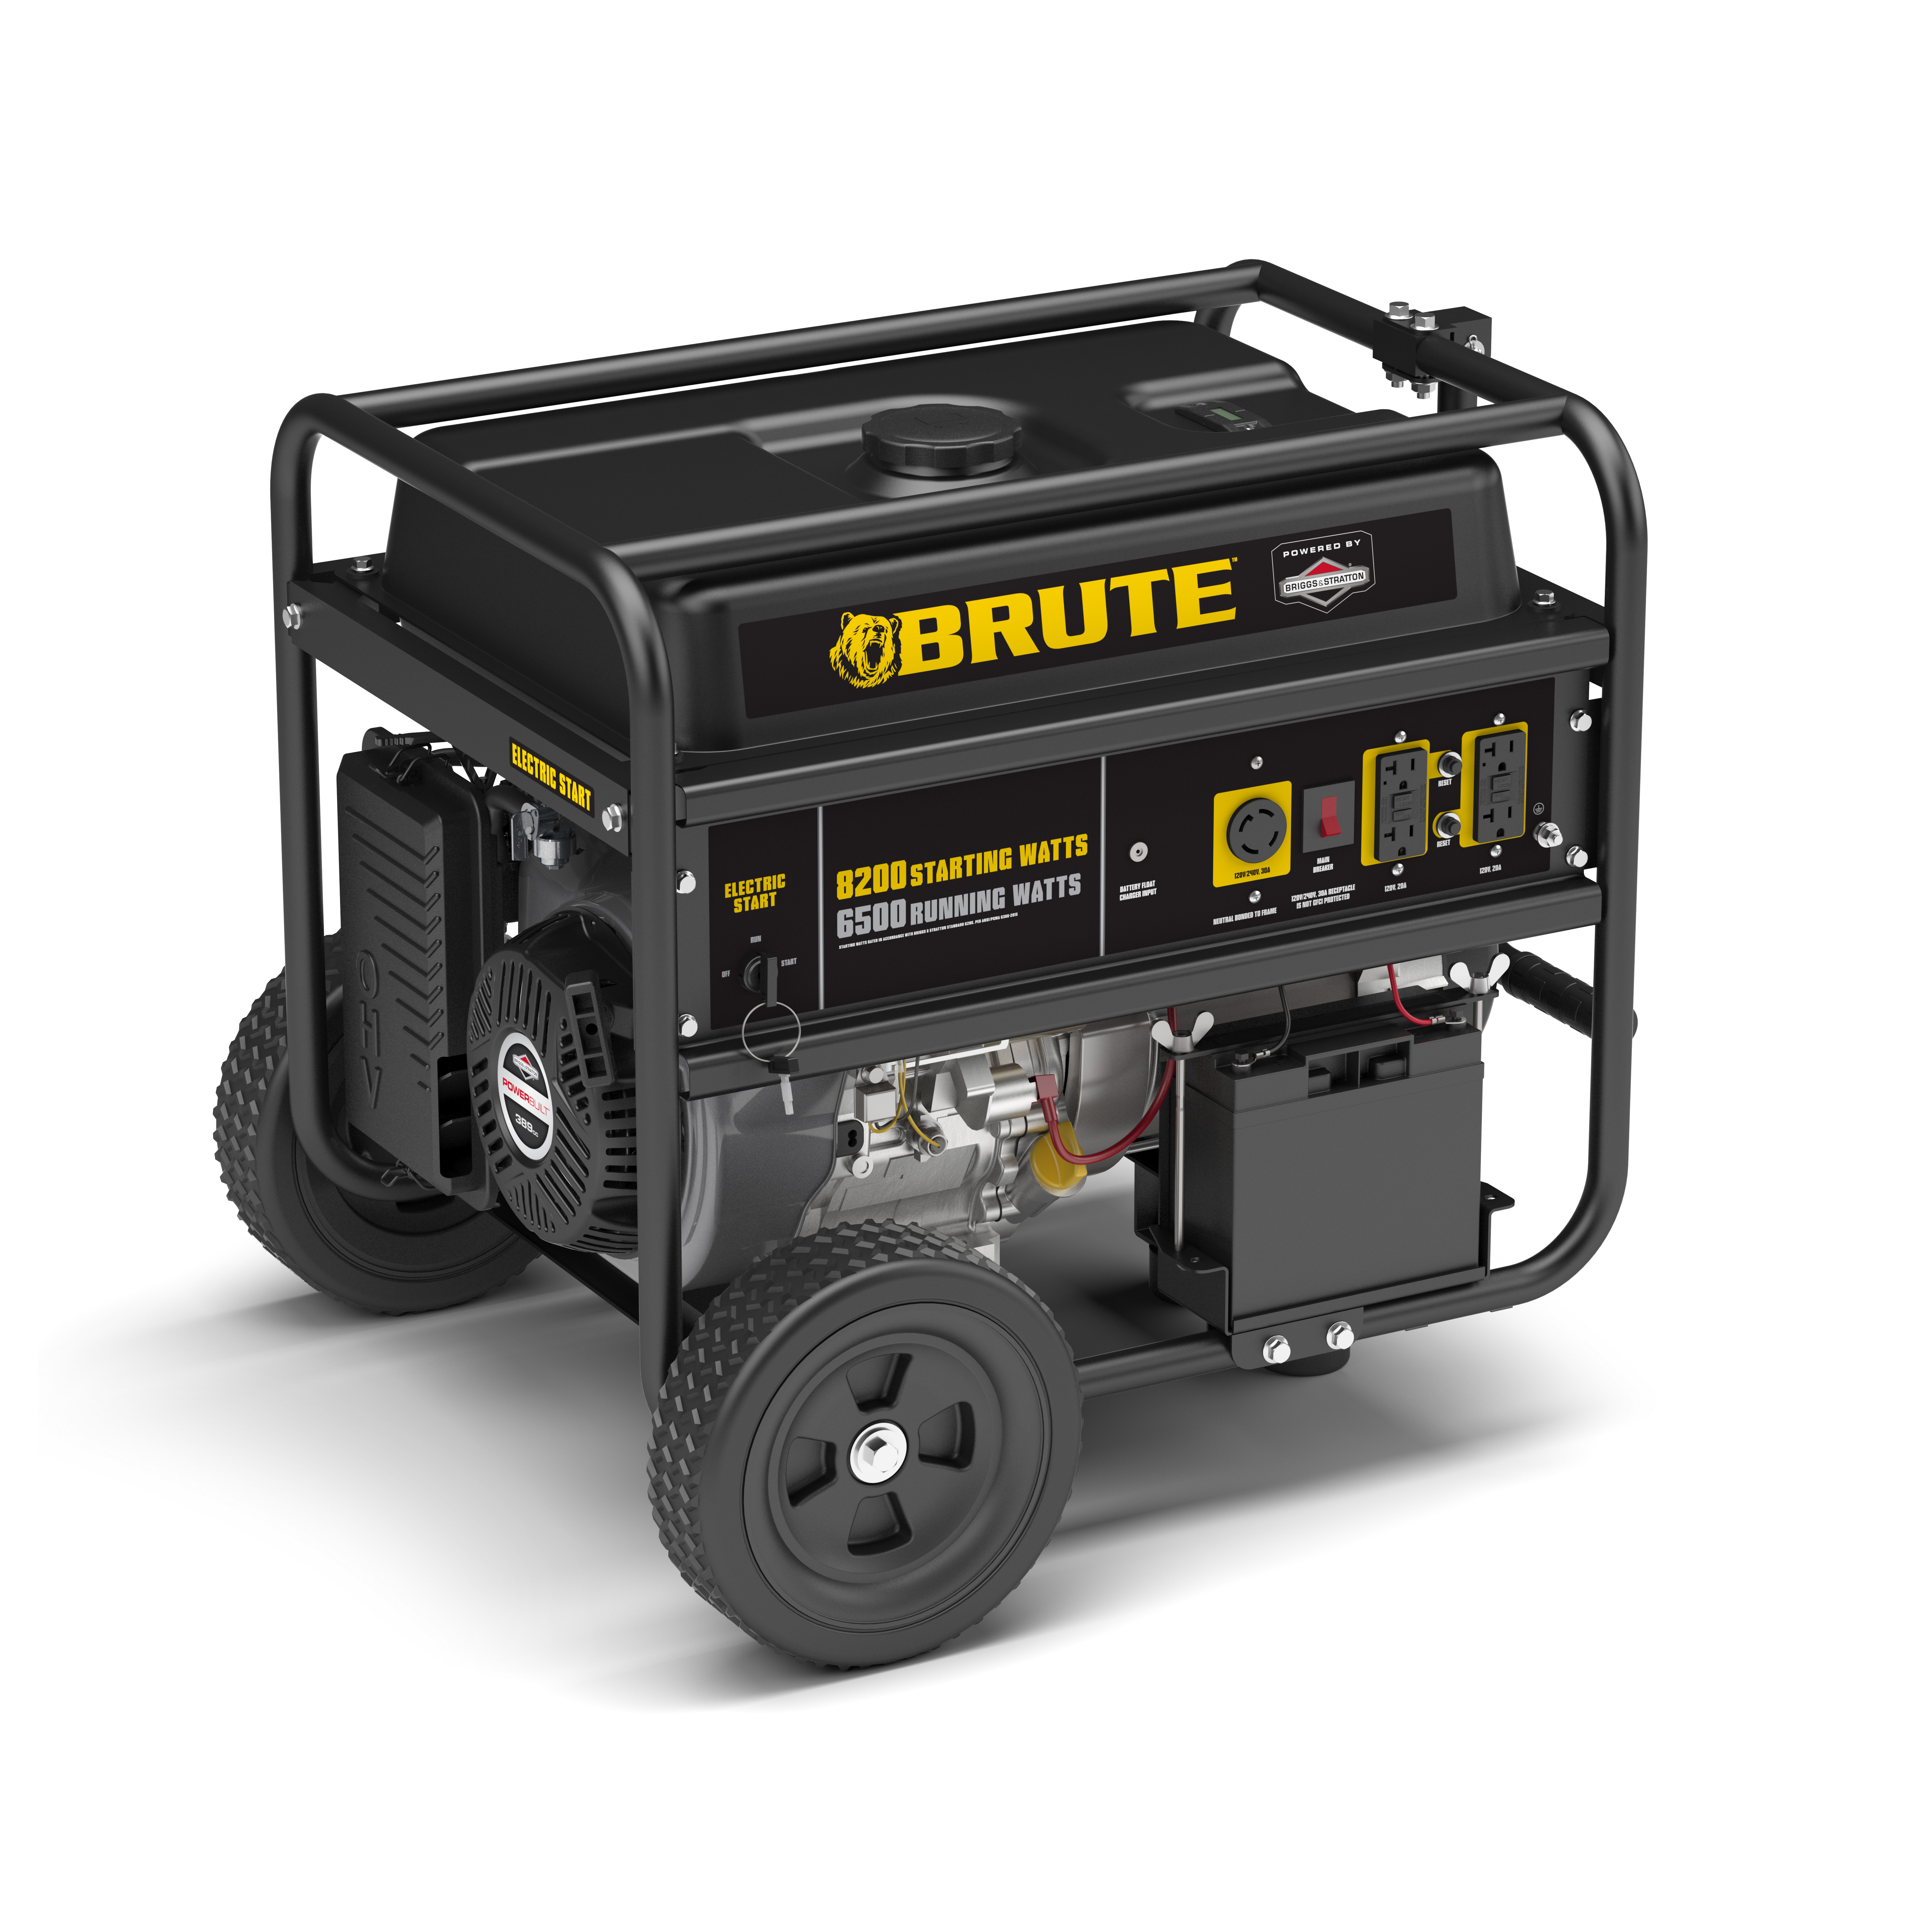 Portable Generators | Brute Power